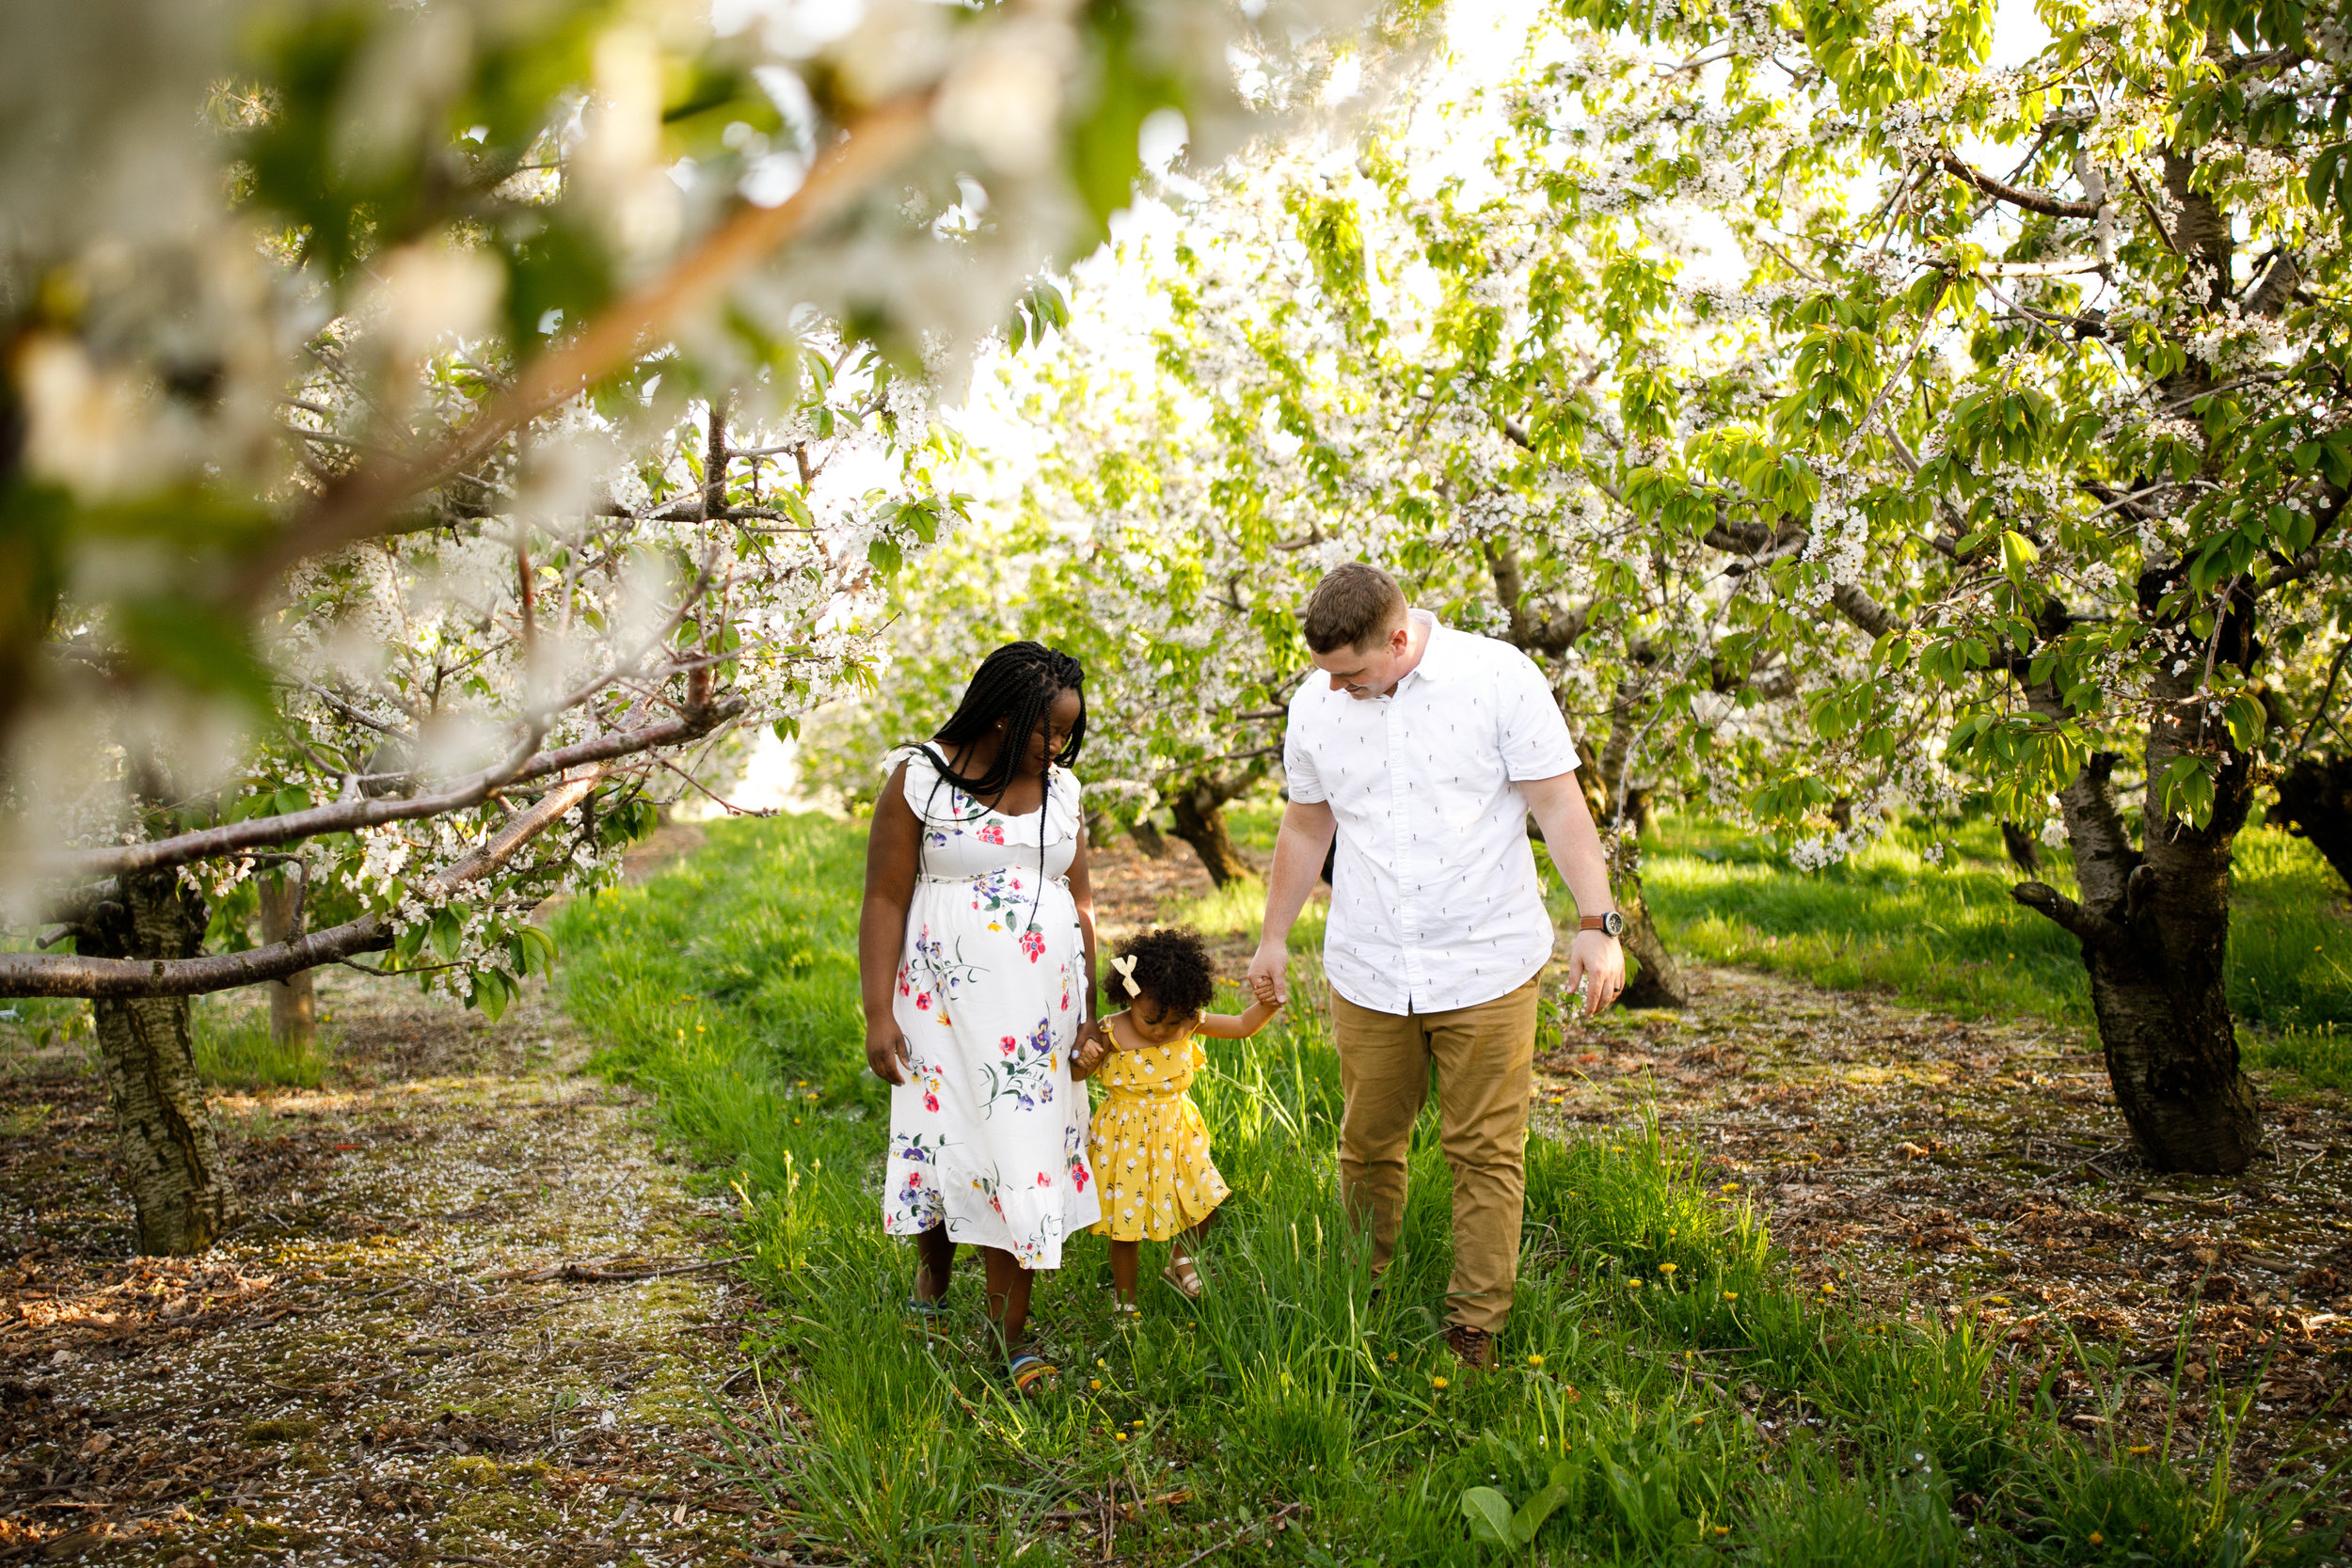 Grand Rapids family photographer - j darling photo - jessica darling - grand rapids photographer - family session - apple blossoms - sparta - michigan photographer036.jpg